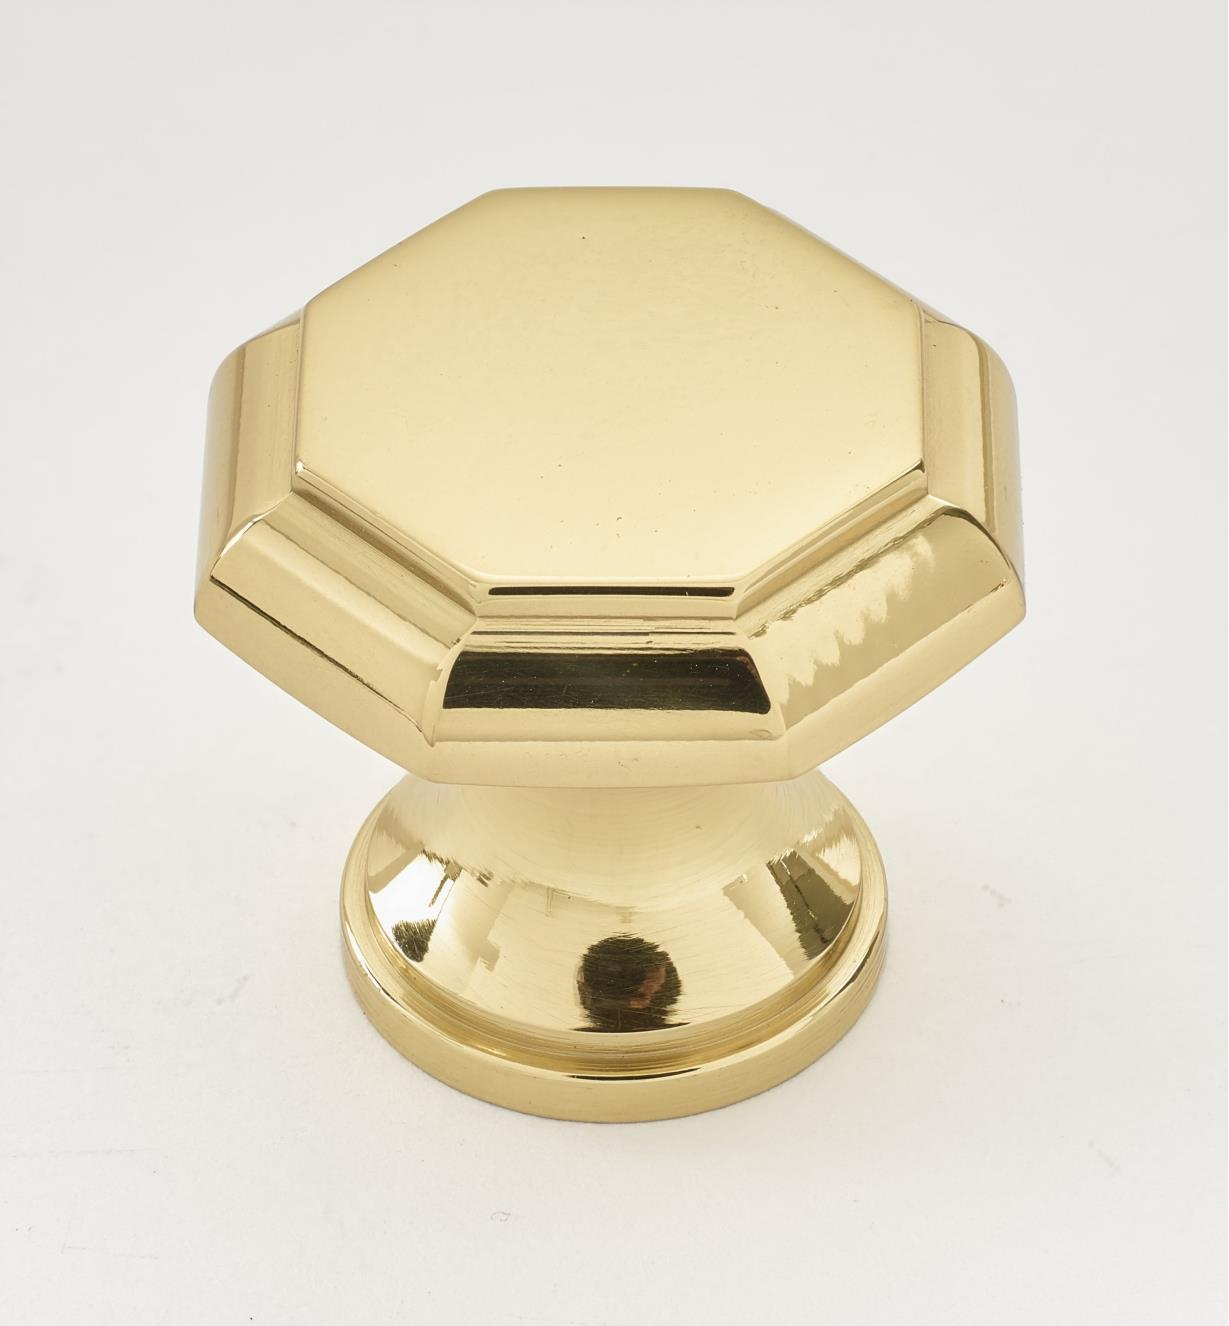 "01W2503 - 1 1/8"" x 1"" Polished Brass Octagonal Knob"